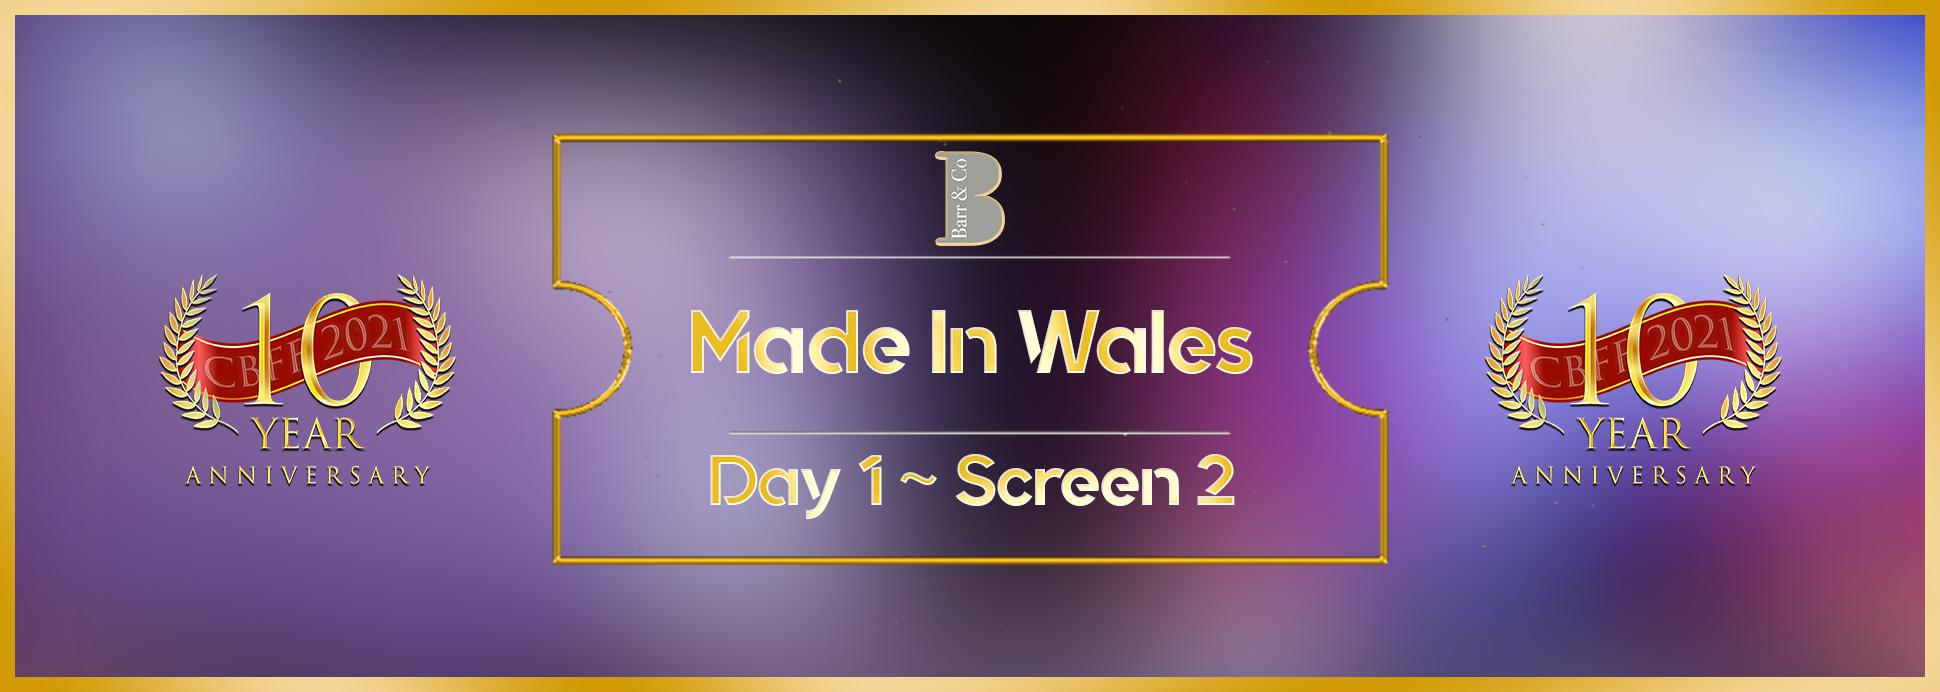 Day 1, Screen 2: Made in Wales